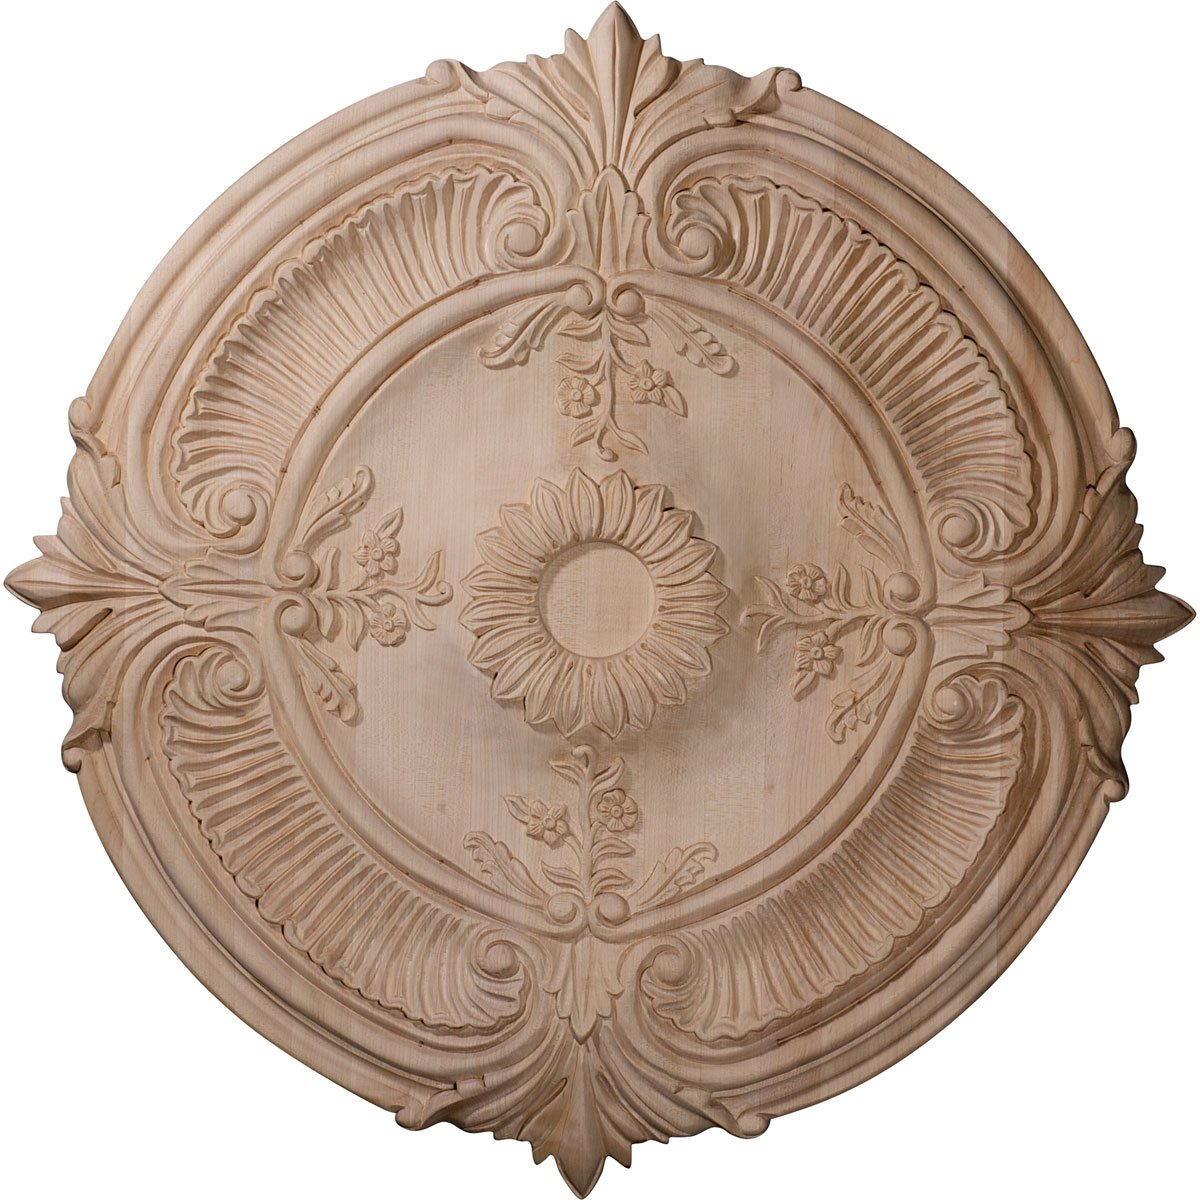 Ekena Millwork CMW16ACRO 16-Inch OD x 1 1/8-Inch P Carved Acanthus Leaf Wood Ceiling Medallion, Red Oak